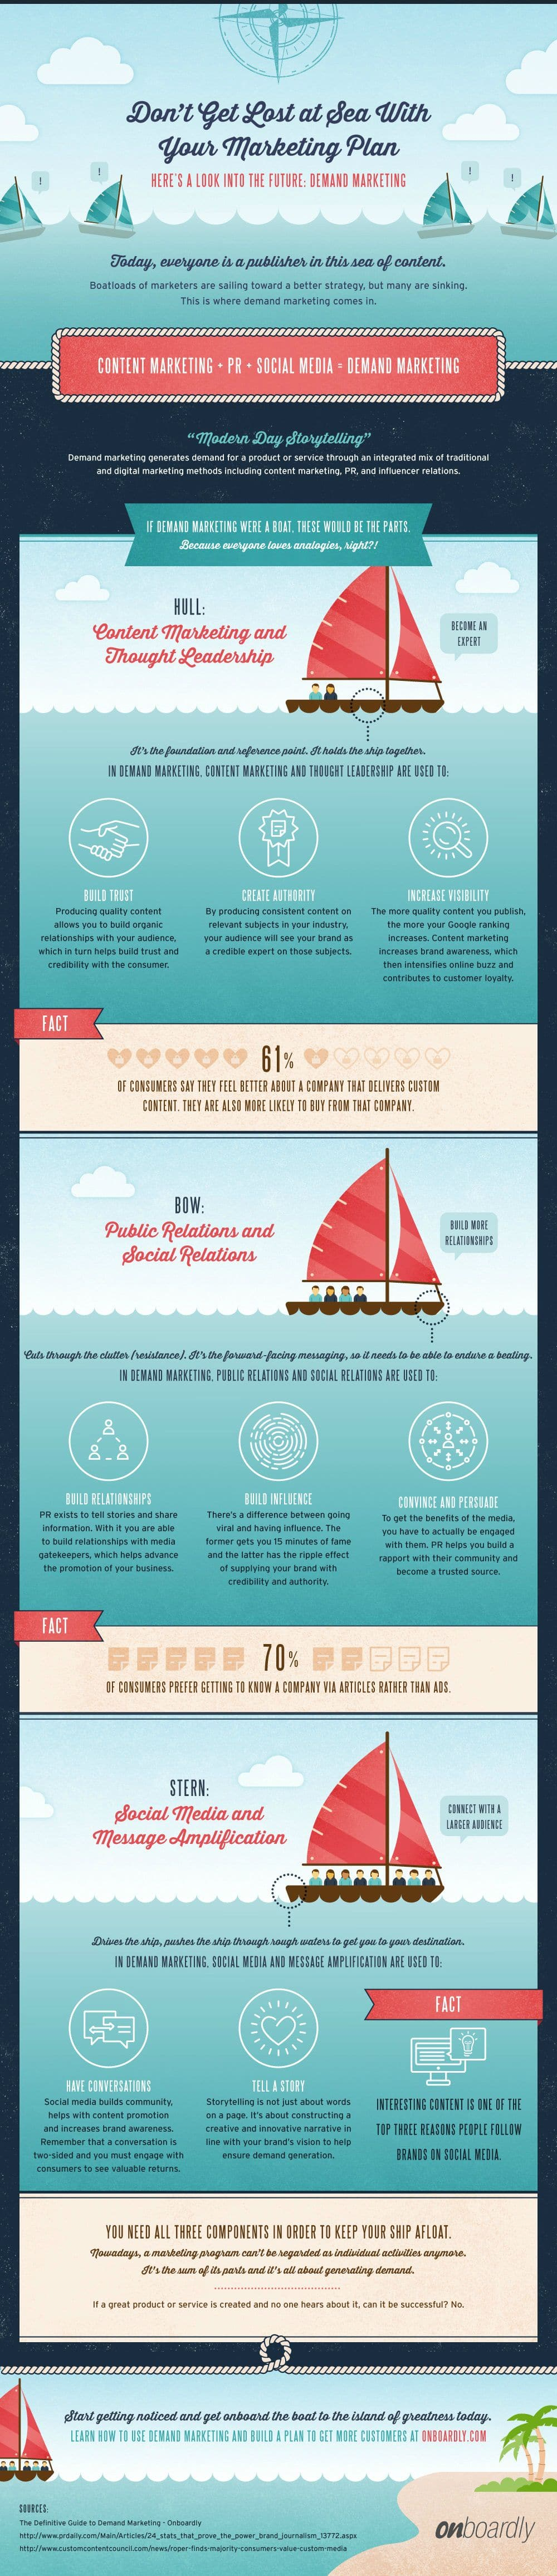 Demand Marketing: Keep Your Marketing Efforts Afloat With Content Marketing, PR And Social Media